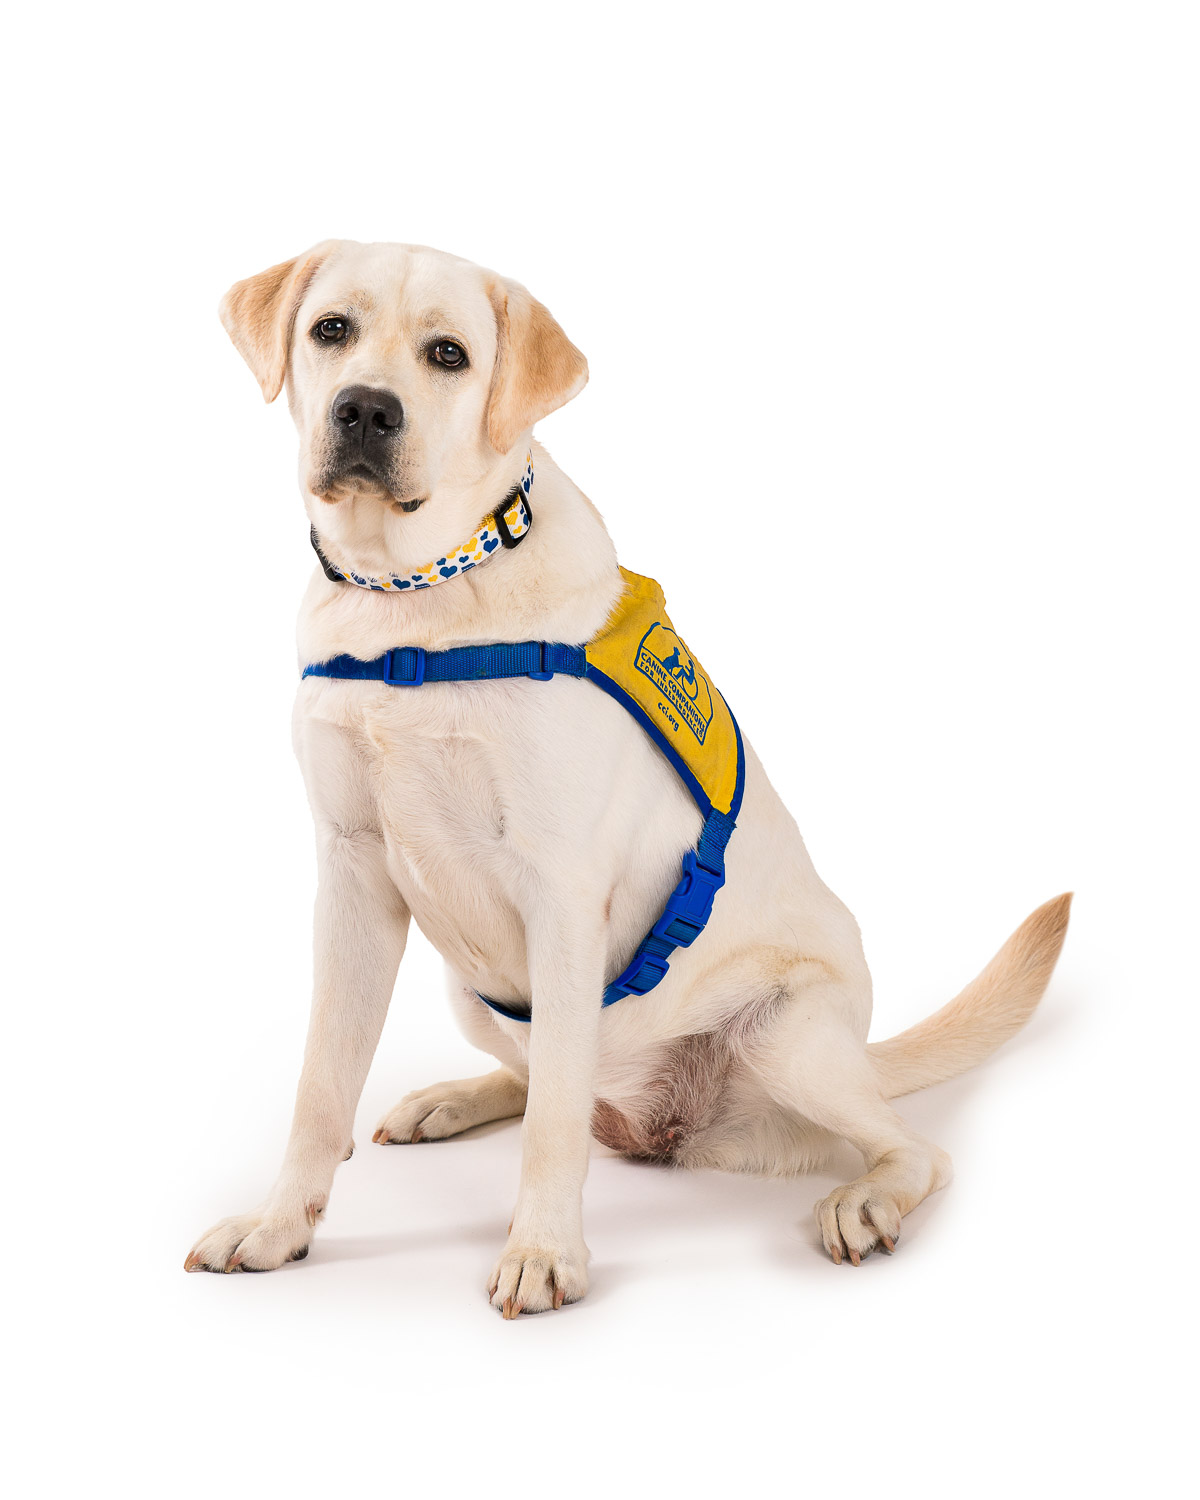 CCI Canine Companions for Independence - 006.jpg